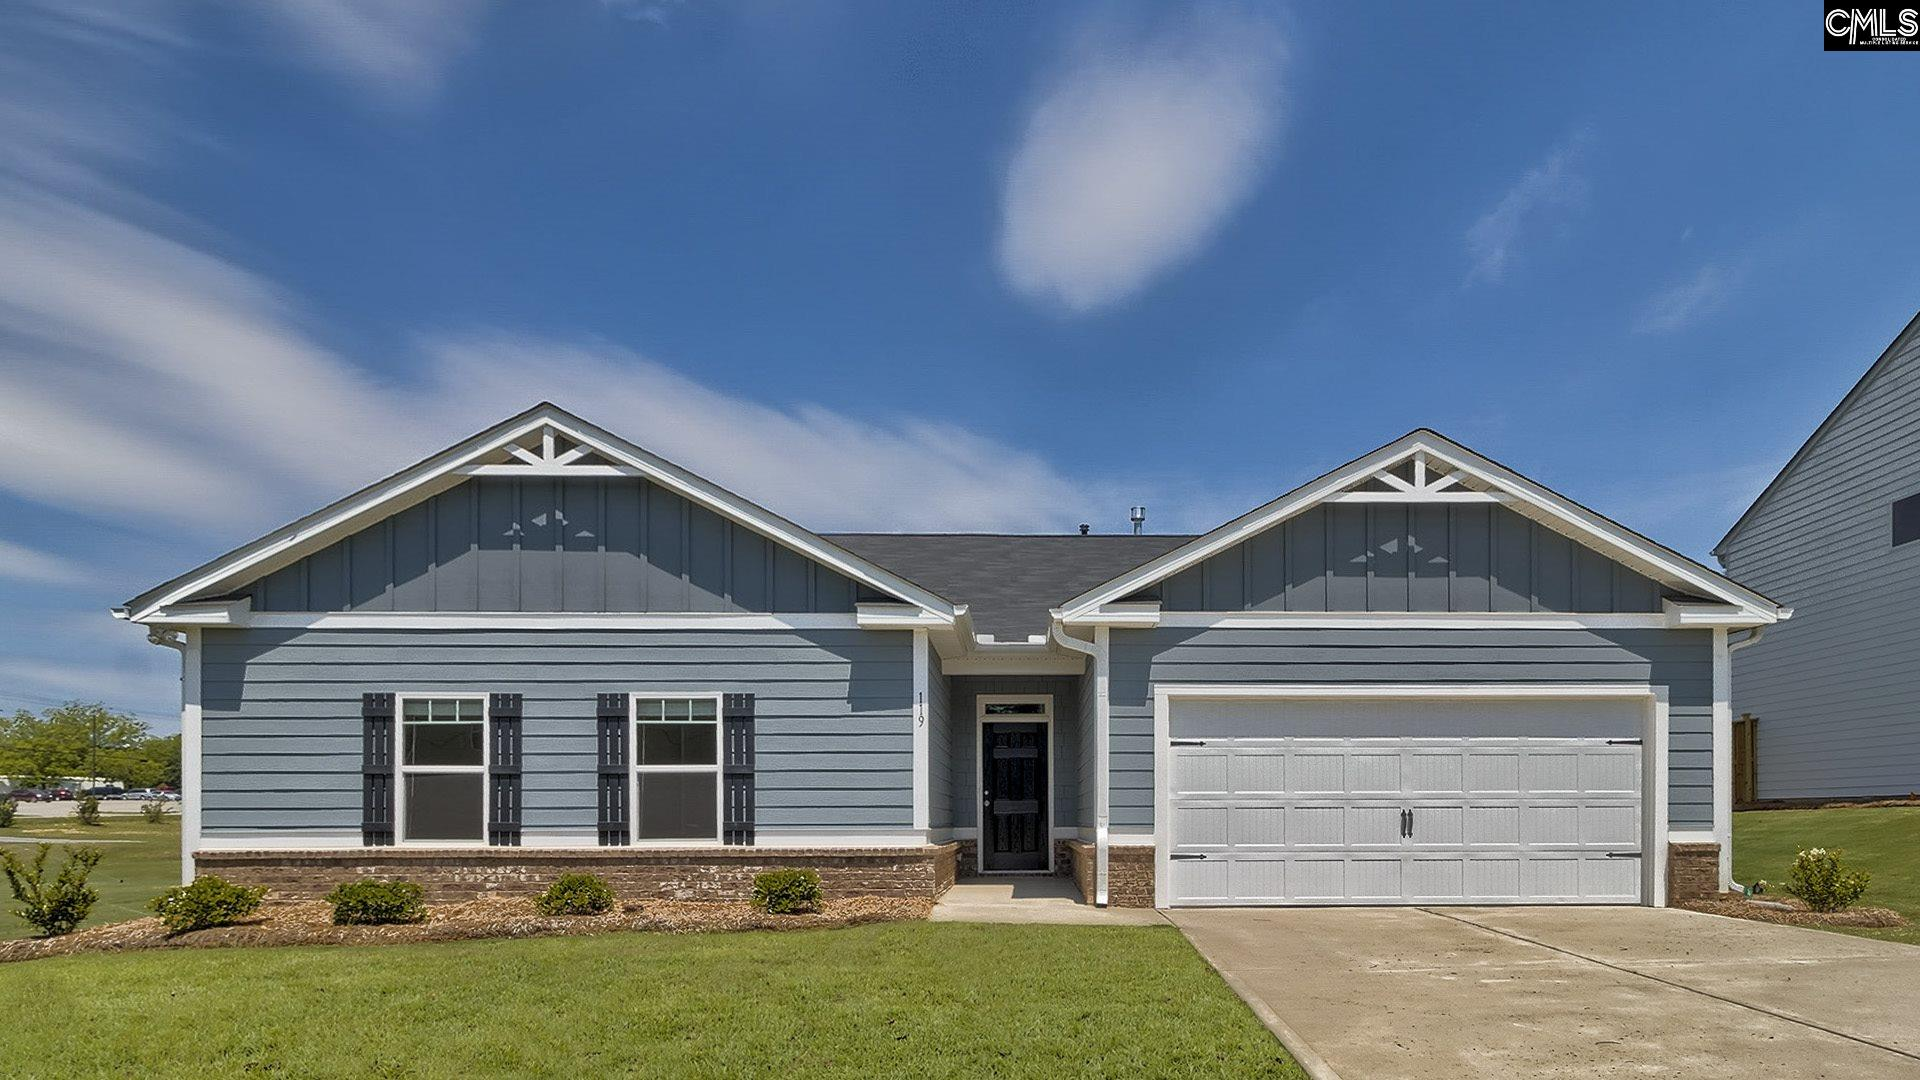 119 Wildlife Grove #4 Lexington, SC 29072